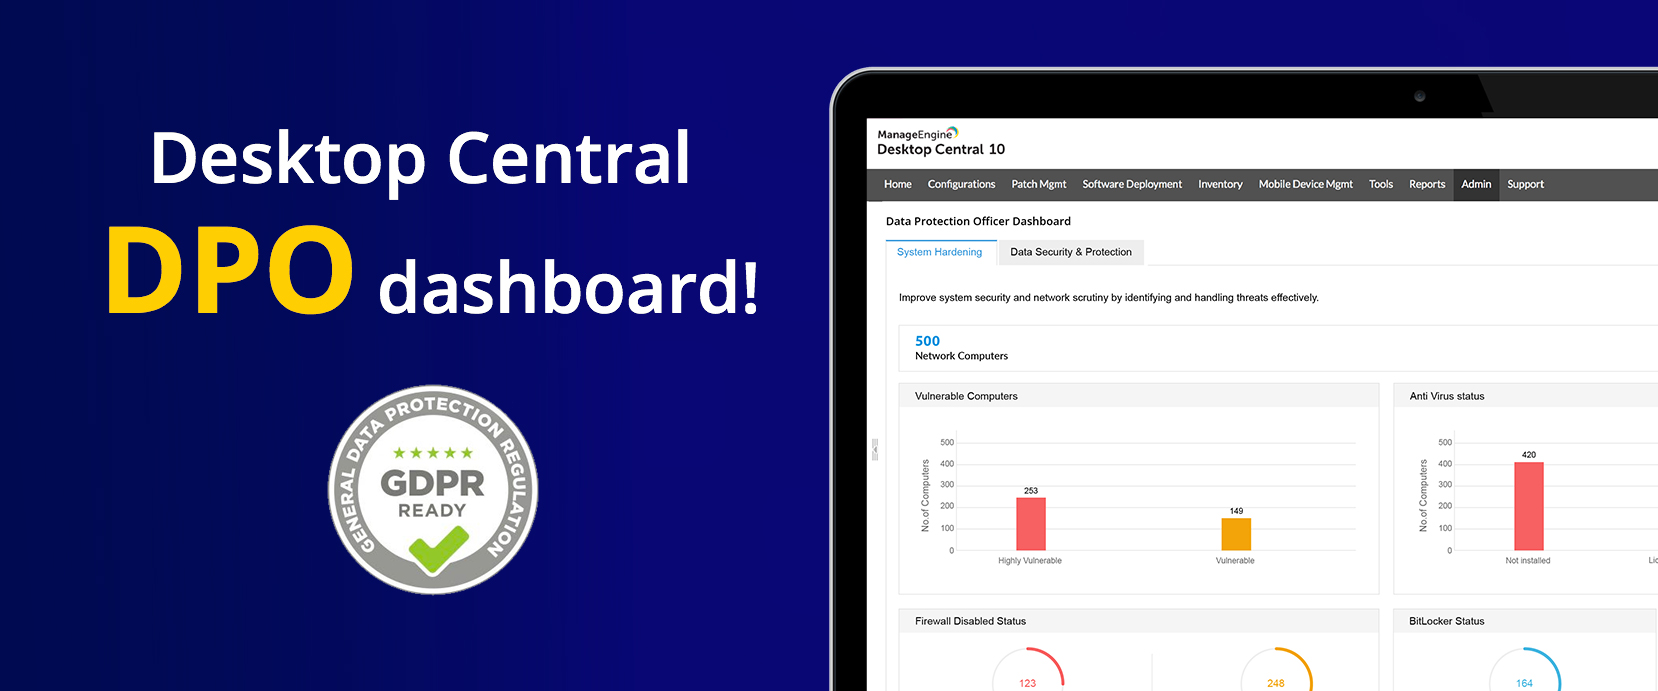 Desktop Centrals Dpo Dashboard Offers Insight Into Network And Data Security Software When Considering Everyone In Your Enterprise You May Think Of Chief Executive Officer As One The Most Important Employees